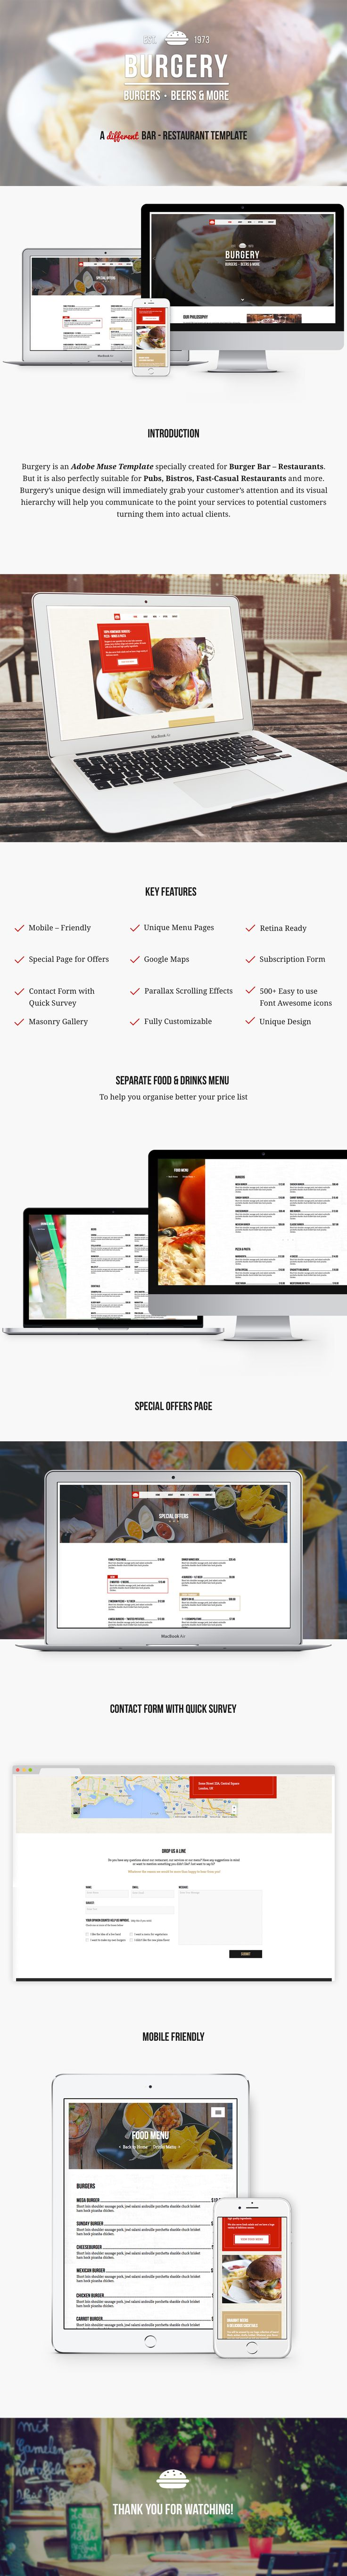 #adobemuse #template #themeforest Burgery is an Adobe Muse Template specially created for Burger Bar – Restaurants. But it is also perfectly suitable for Pubs, Bistros, Fast-Casual Restaurants and more. Burgery's unique design will immediately grab your customer's attention and its visual hierarchy will help you communicate to the point your services to potential customers turning them into actual clients.